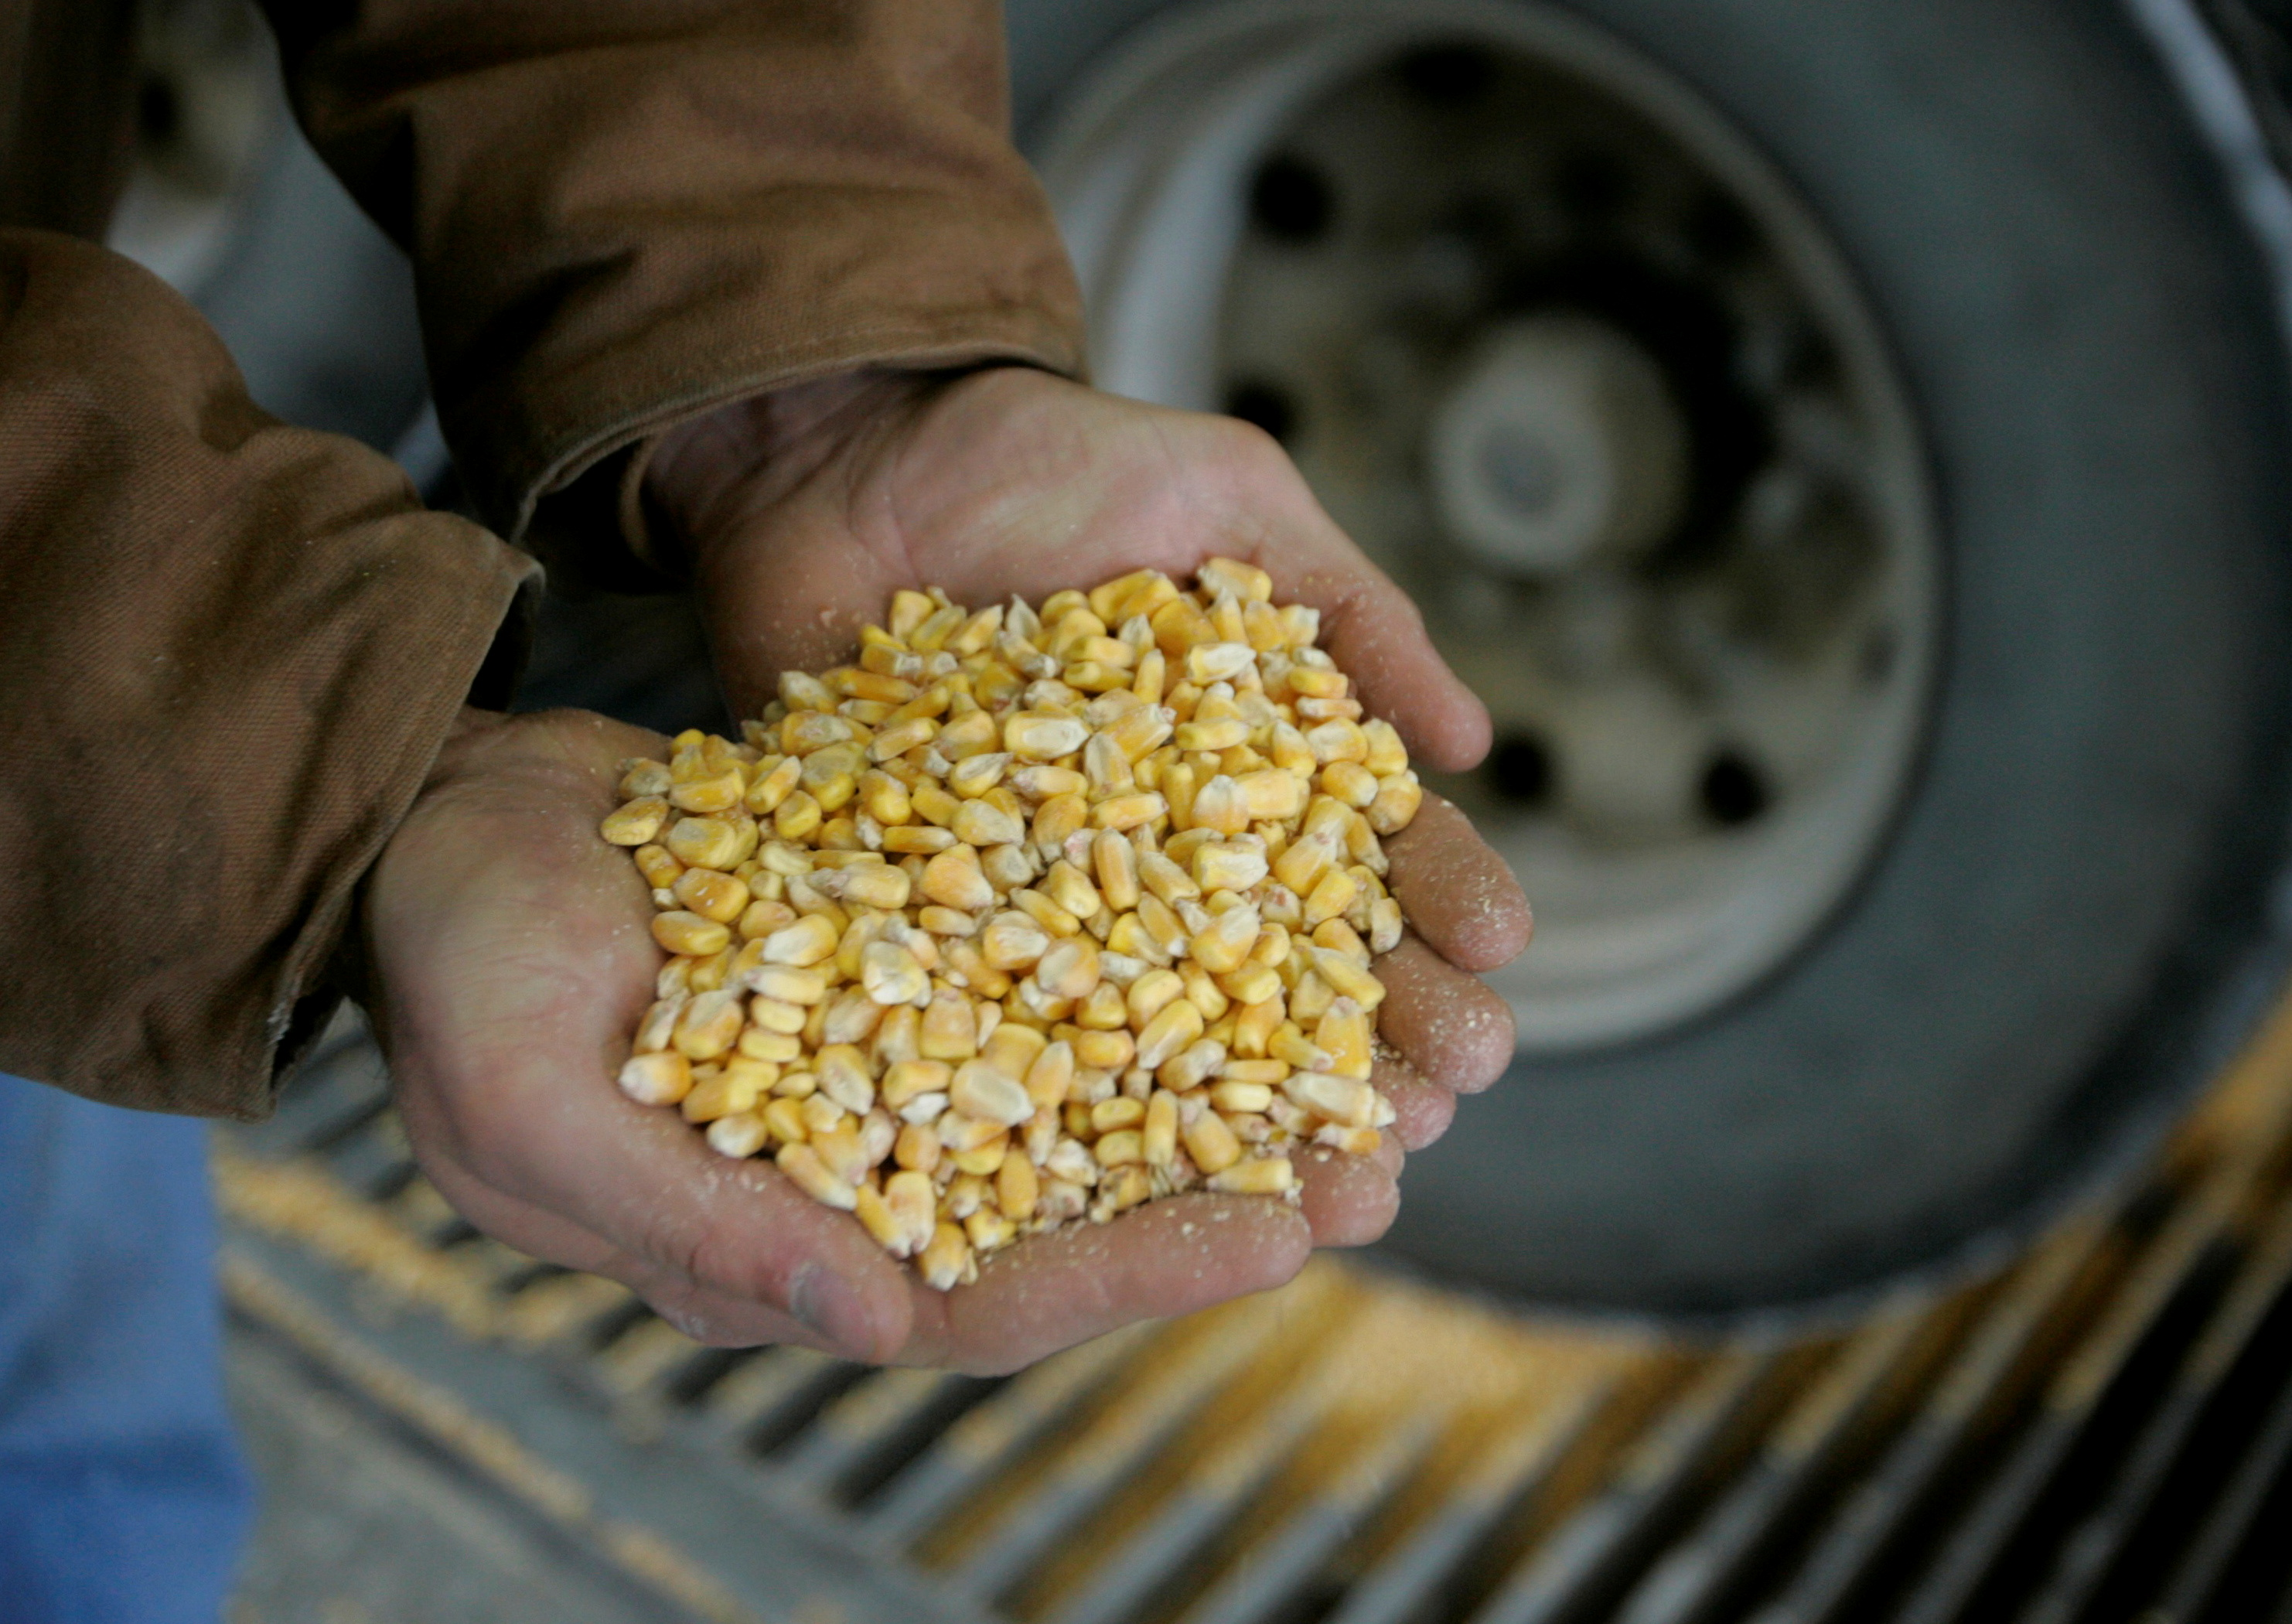 Raw corn is shown as it is unloaded for processing at the Lincolnway Energy plant in the town of Nevada, Iowa, December 6, 2007. The company, one of a growing number across Iowa and the United States, converts corn to ethanol fuel to be used in flexible-fuelled vehicles as an alternative energy source to oil. The business operates around the clock seven days a week, processing approximately 50,000 bushels (1.27 tonnes) of corn daily, and creating 150,000 gallons (567,752 litres) of ethanol per day.      REUTERS/Jason Reed/File Photo